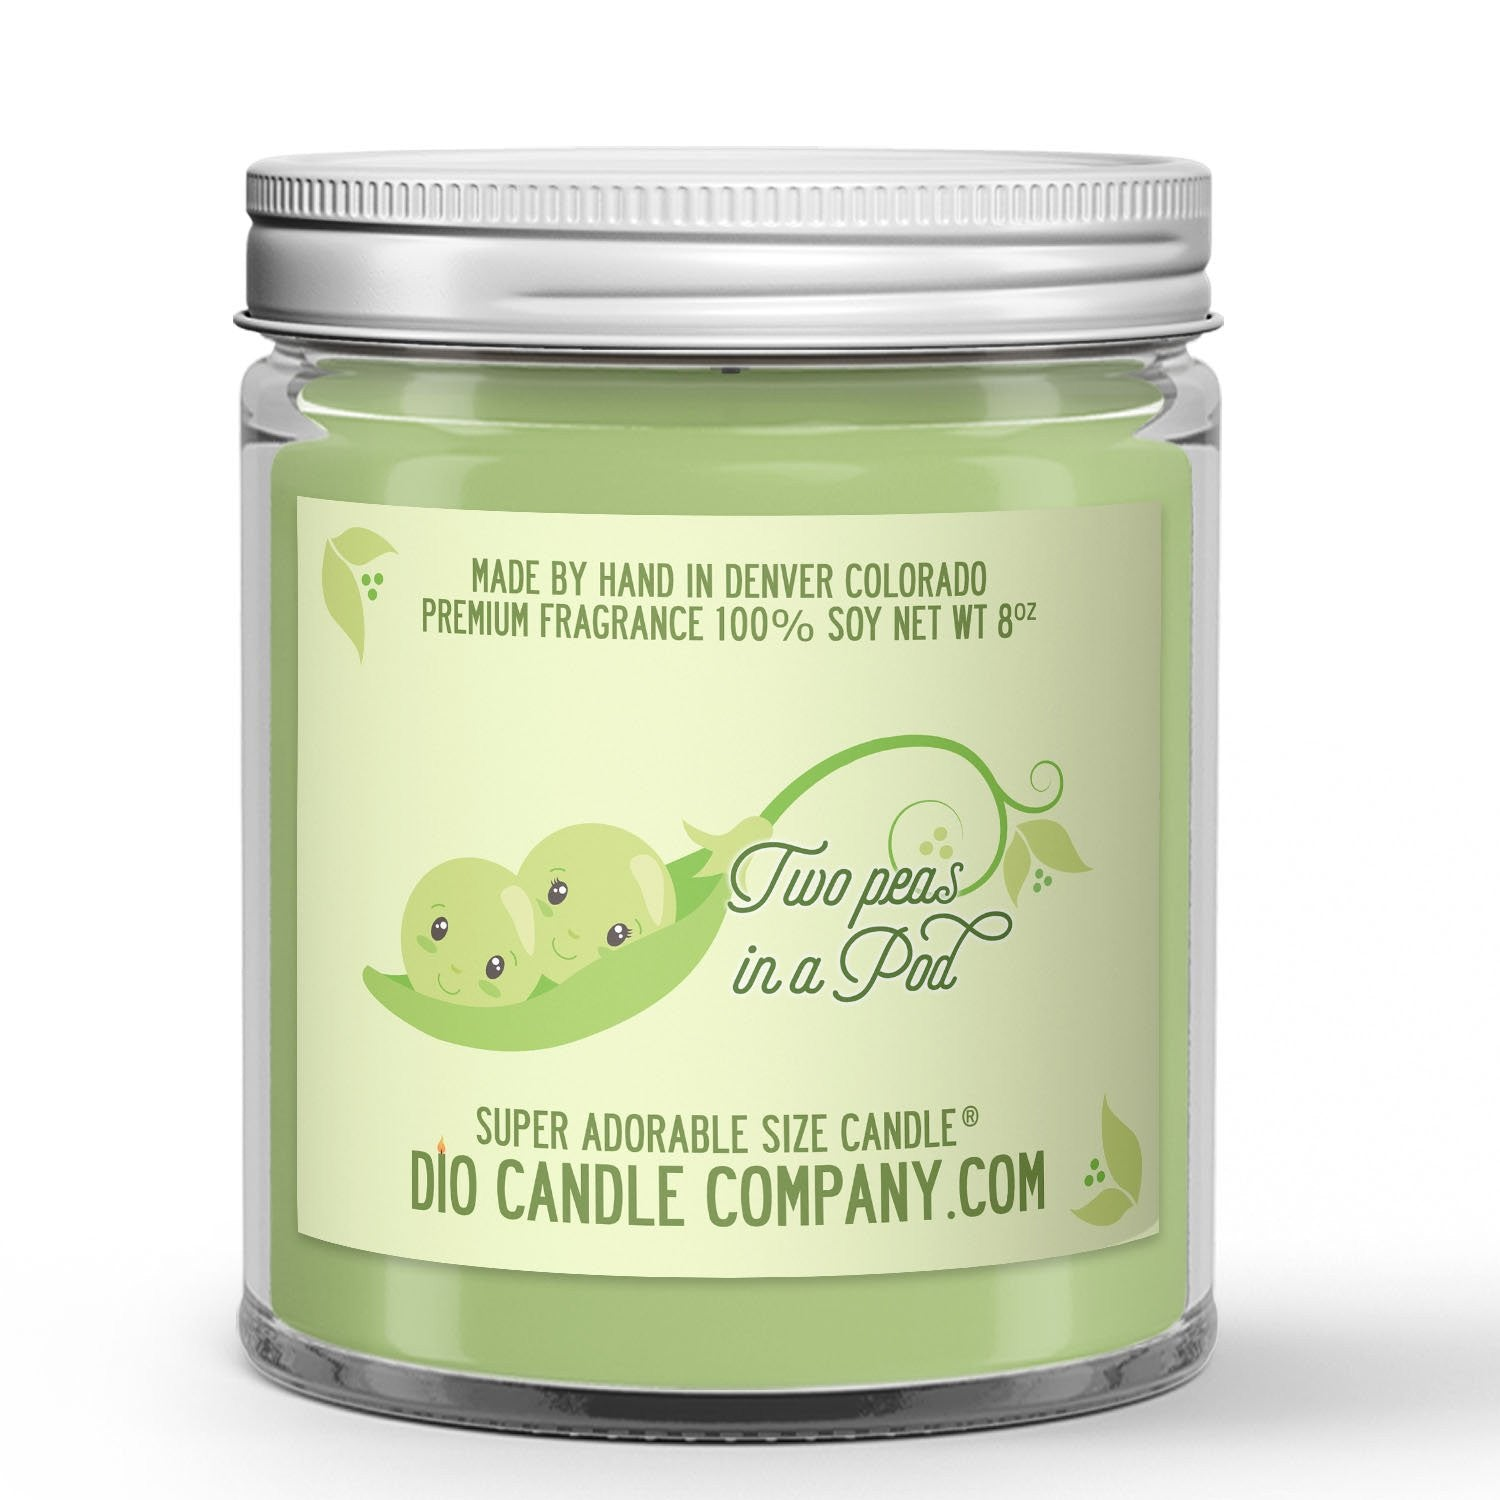 Two Peas in a Pod Candle - Snap Peas - 8oz Super Adorable Size Candle® - Dio Candle Company